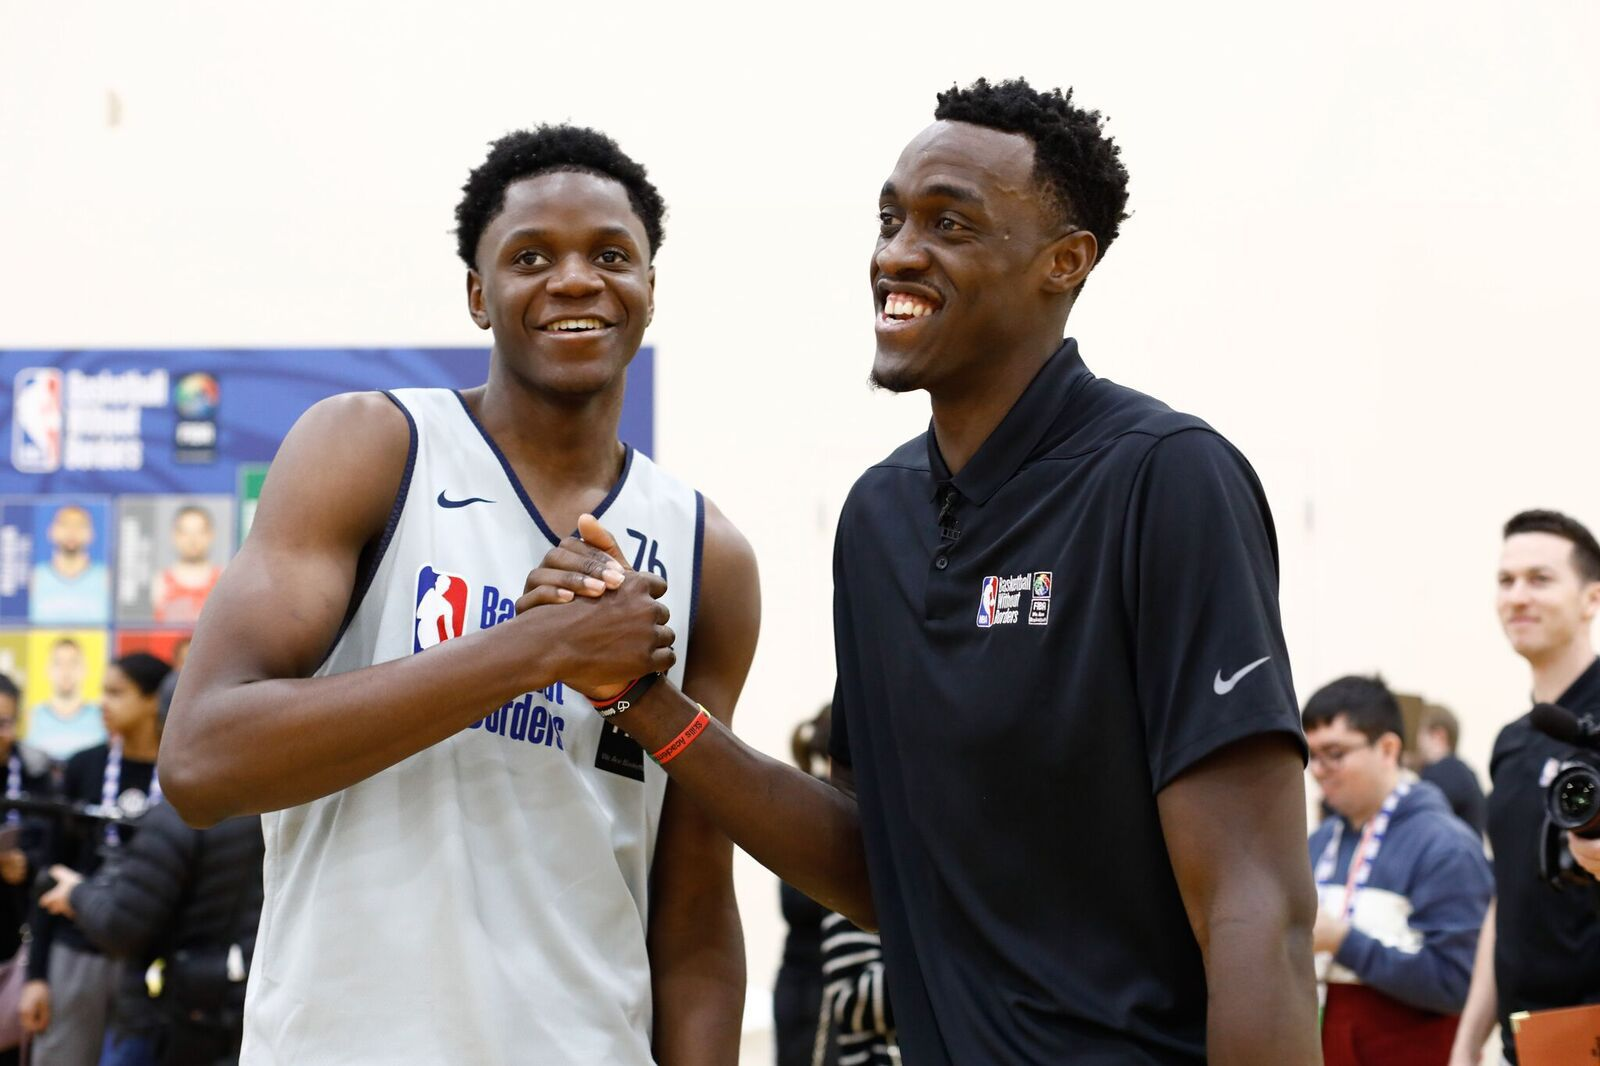 Les résultats de la 6ème édition du Basketball Without Borders Global Camp